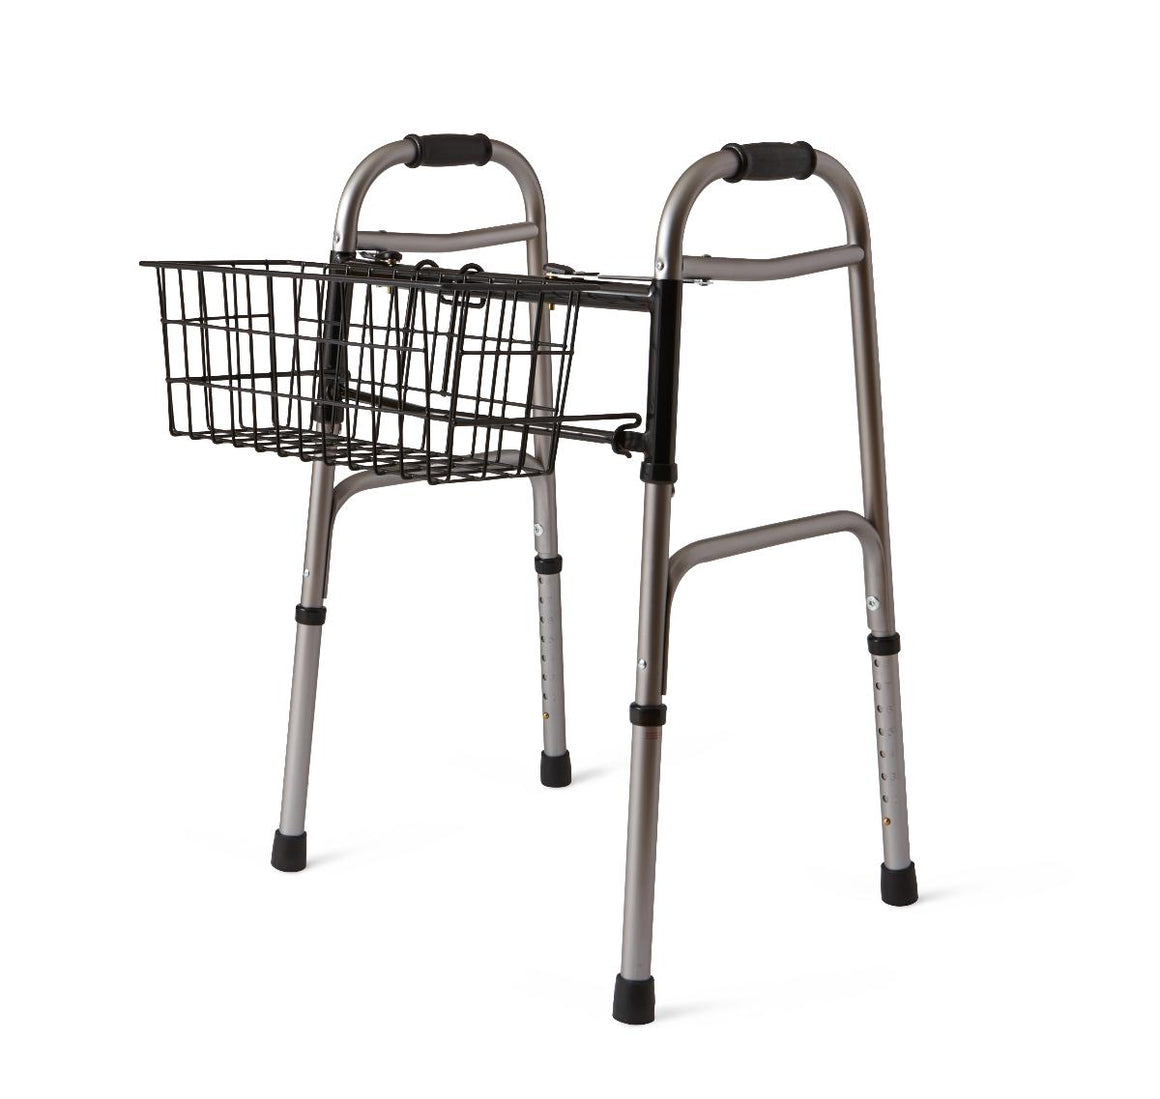 Basket for 2-Button Walkers, Case of 2